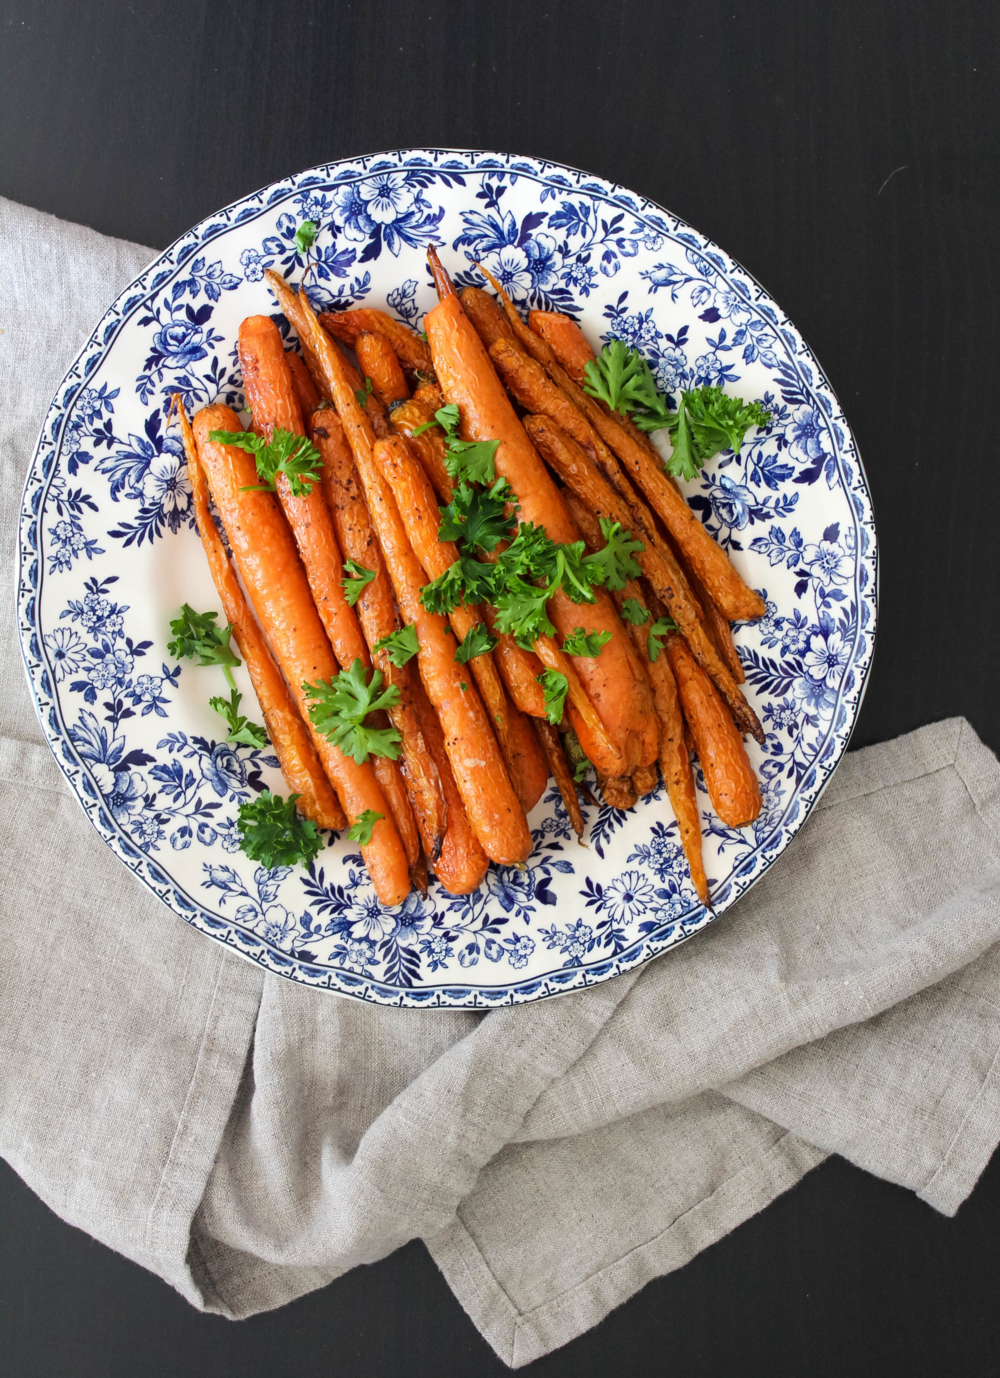 Roasted Carrots | Freckled Italian